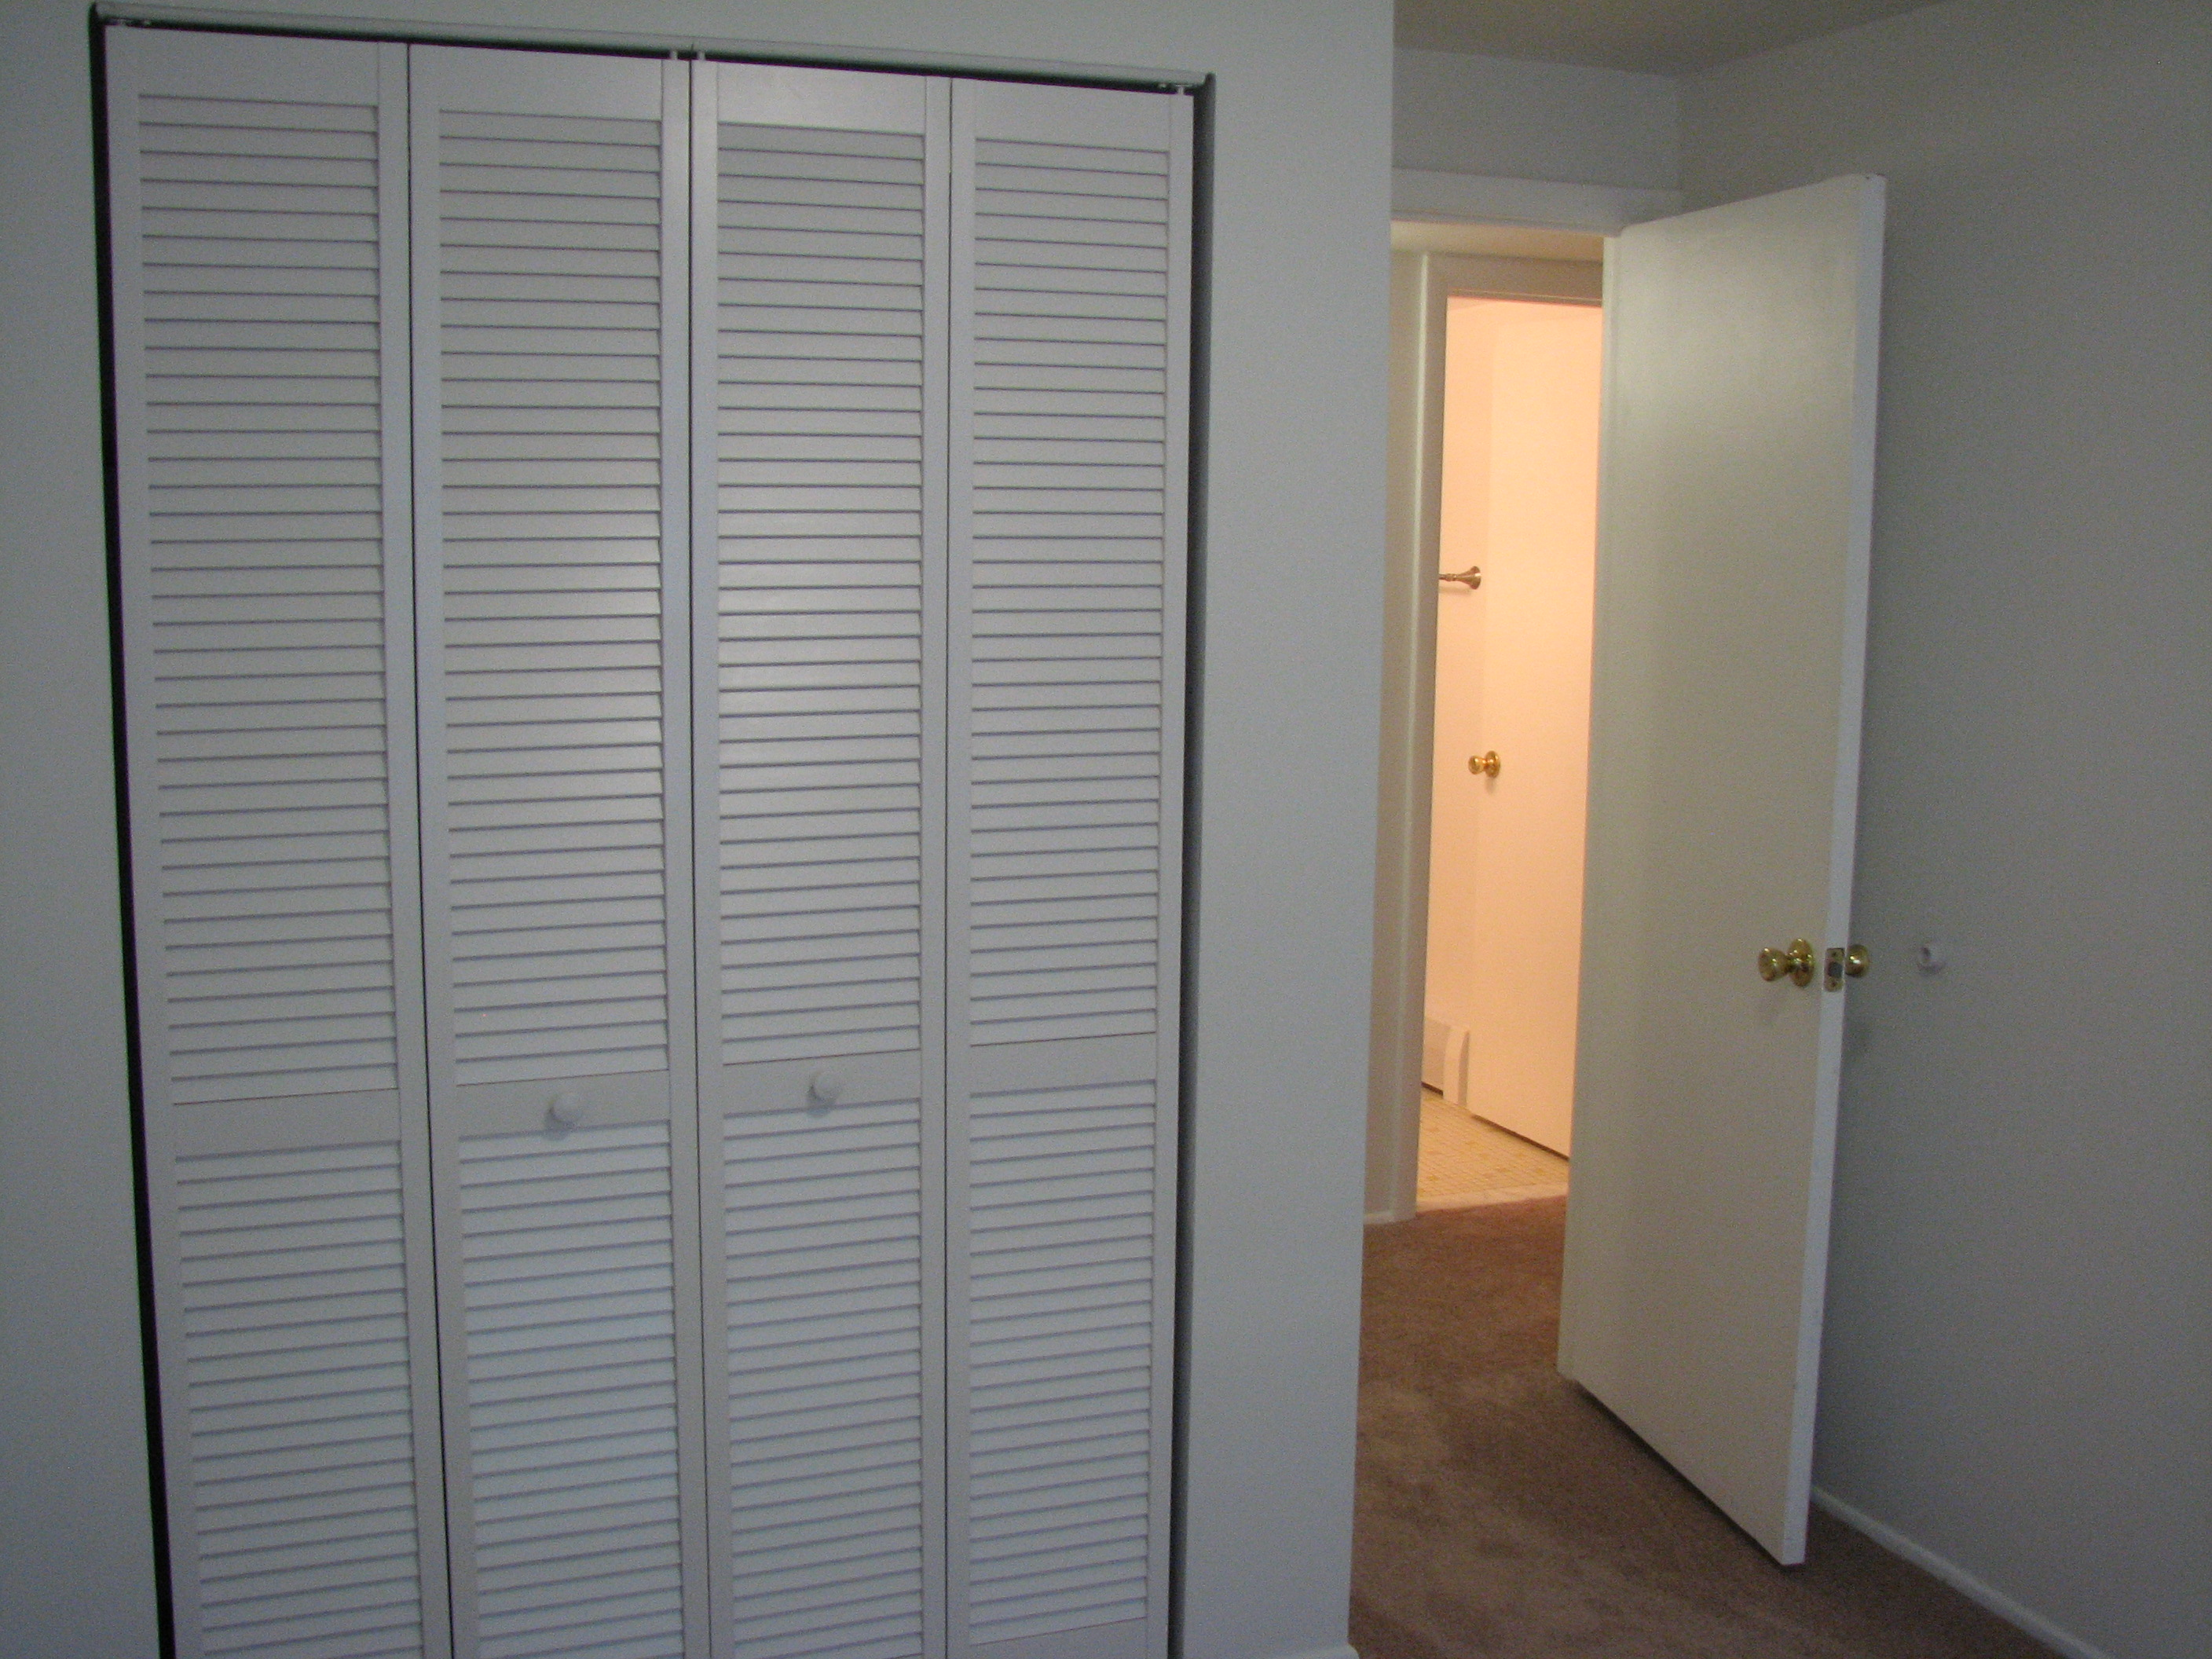 Soundproofing Door (how much, Lowes, curtains, paint) - House ...